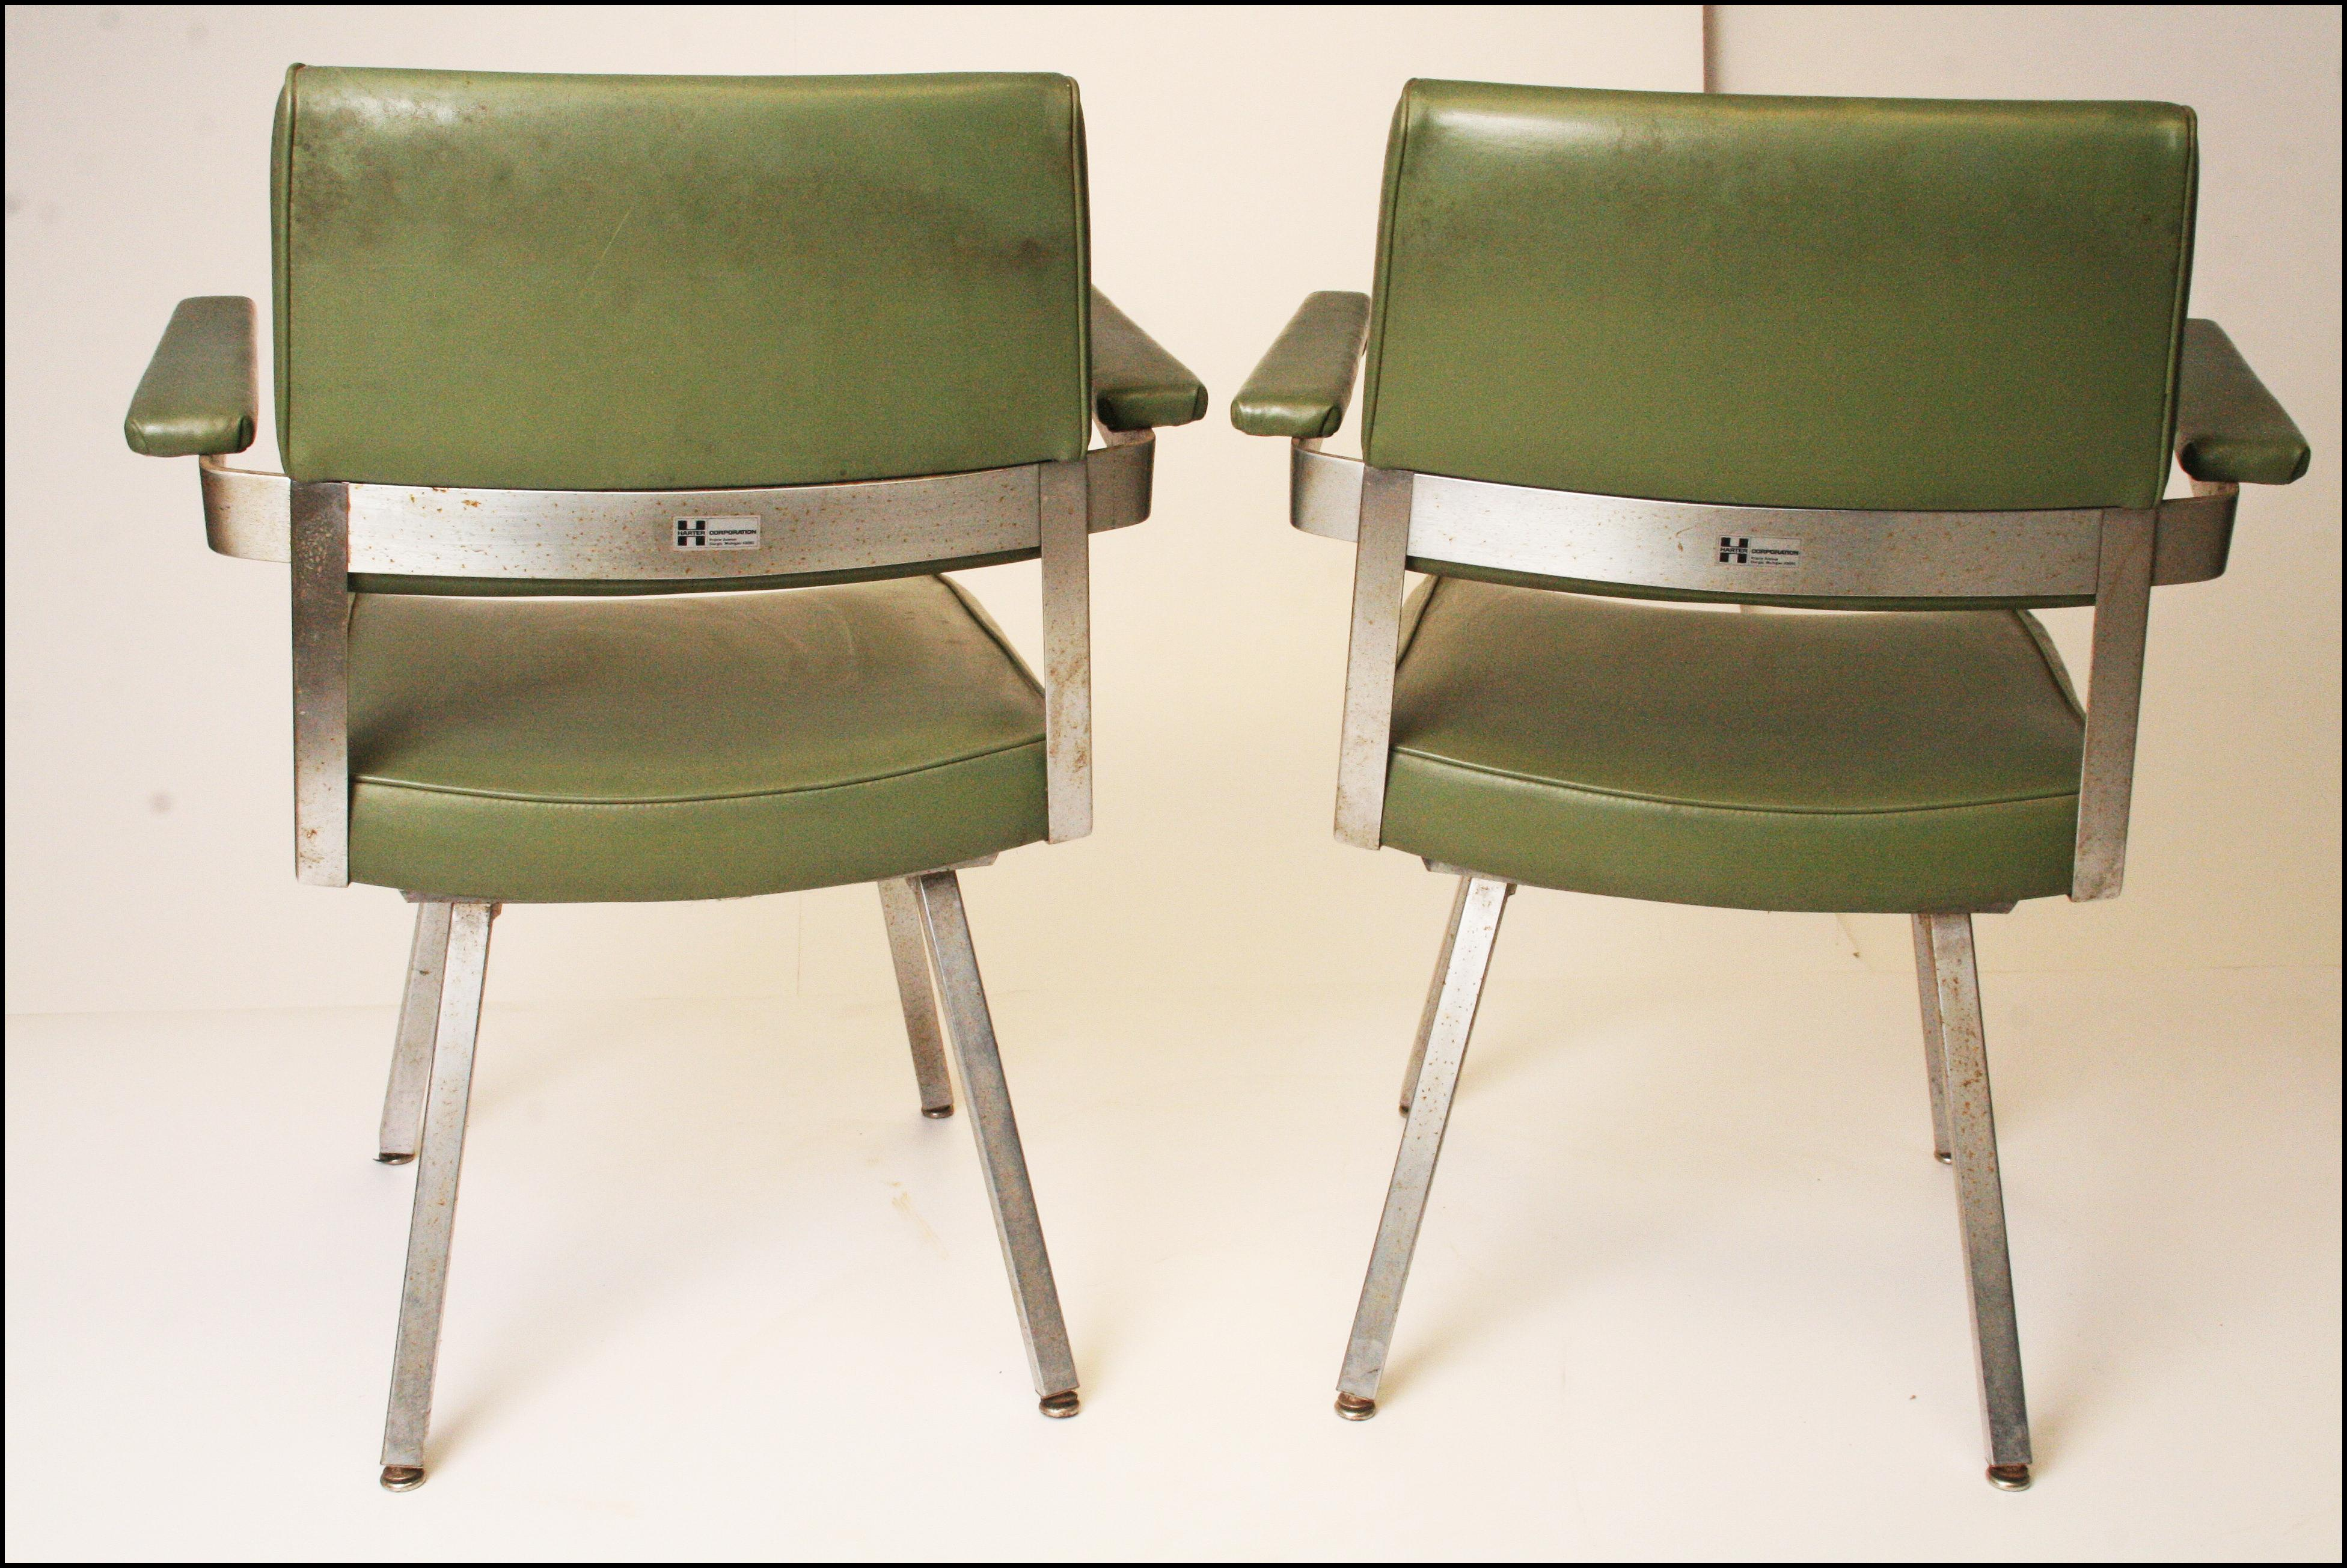 Harter Mid Century Modern Industrial Office Chairs  A Pair   Image 5 Of 11